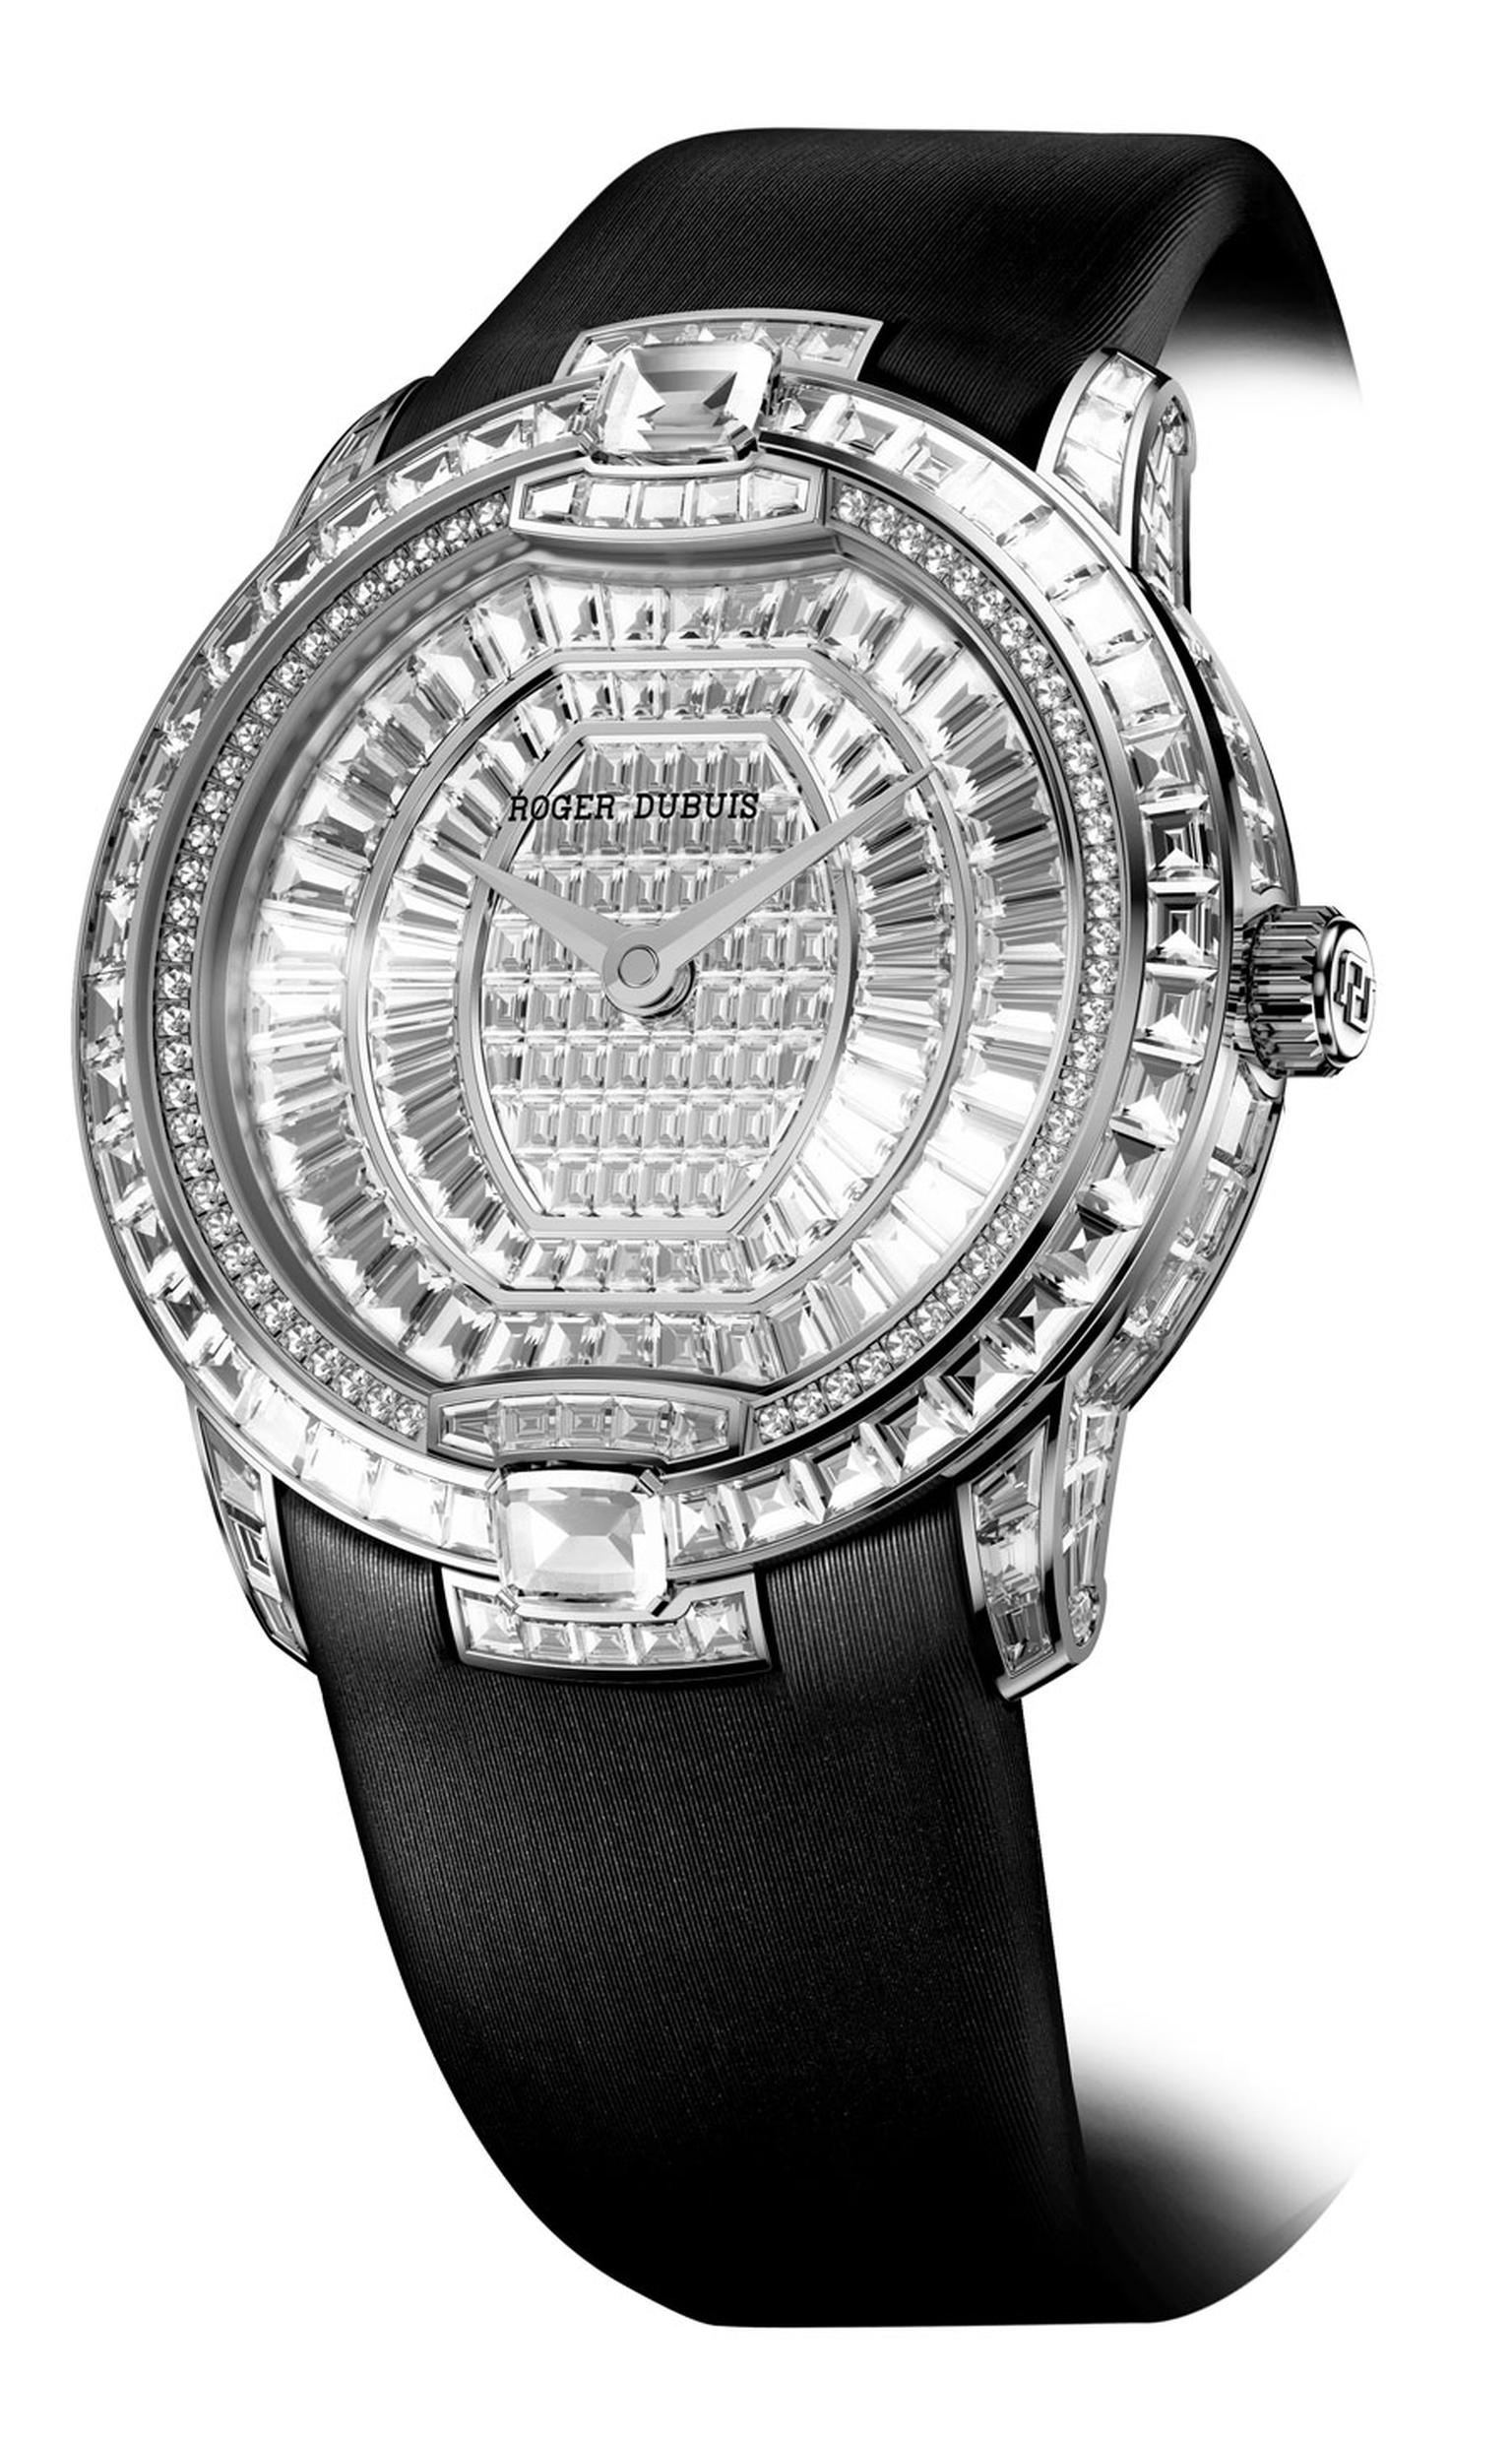 Roger-Dubuis-Velvet-High-Jewellery.jpg